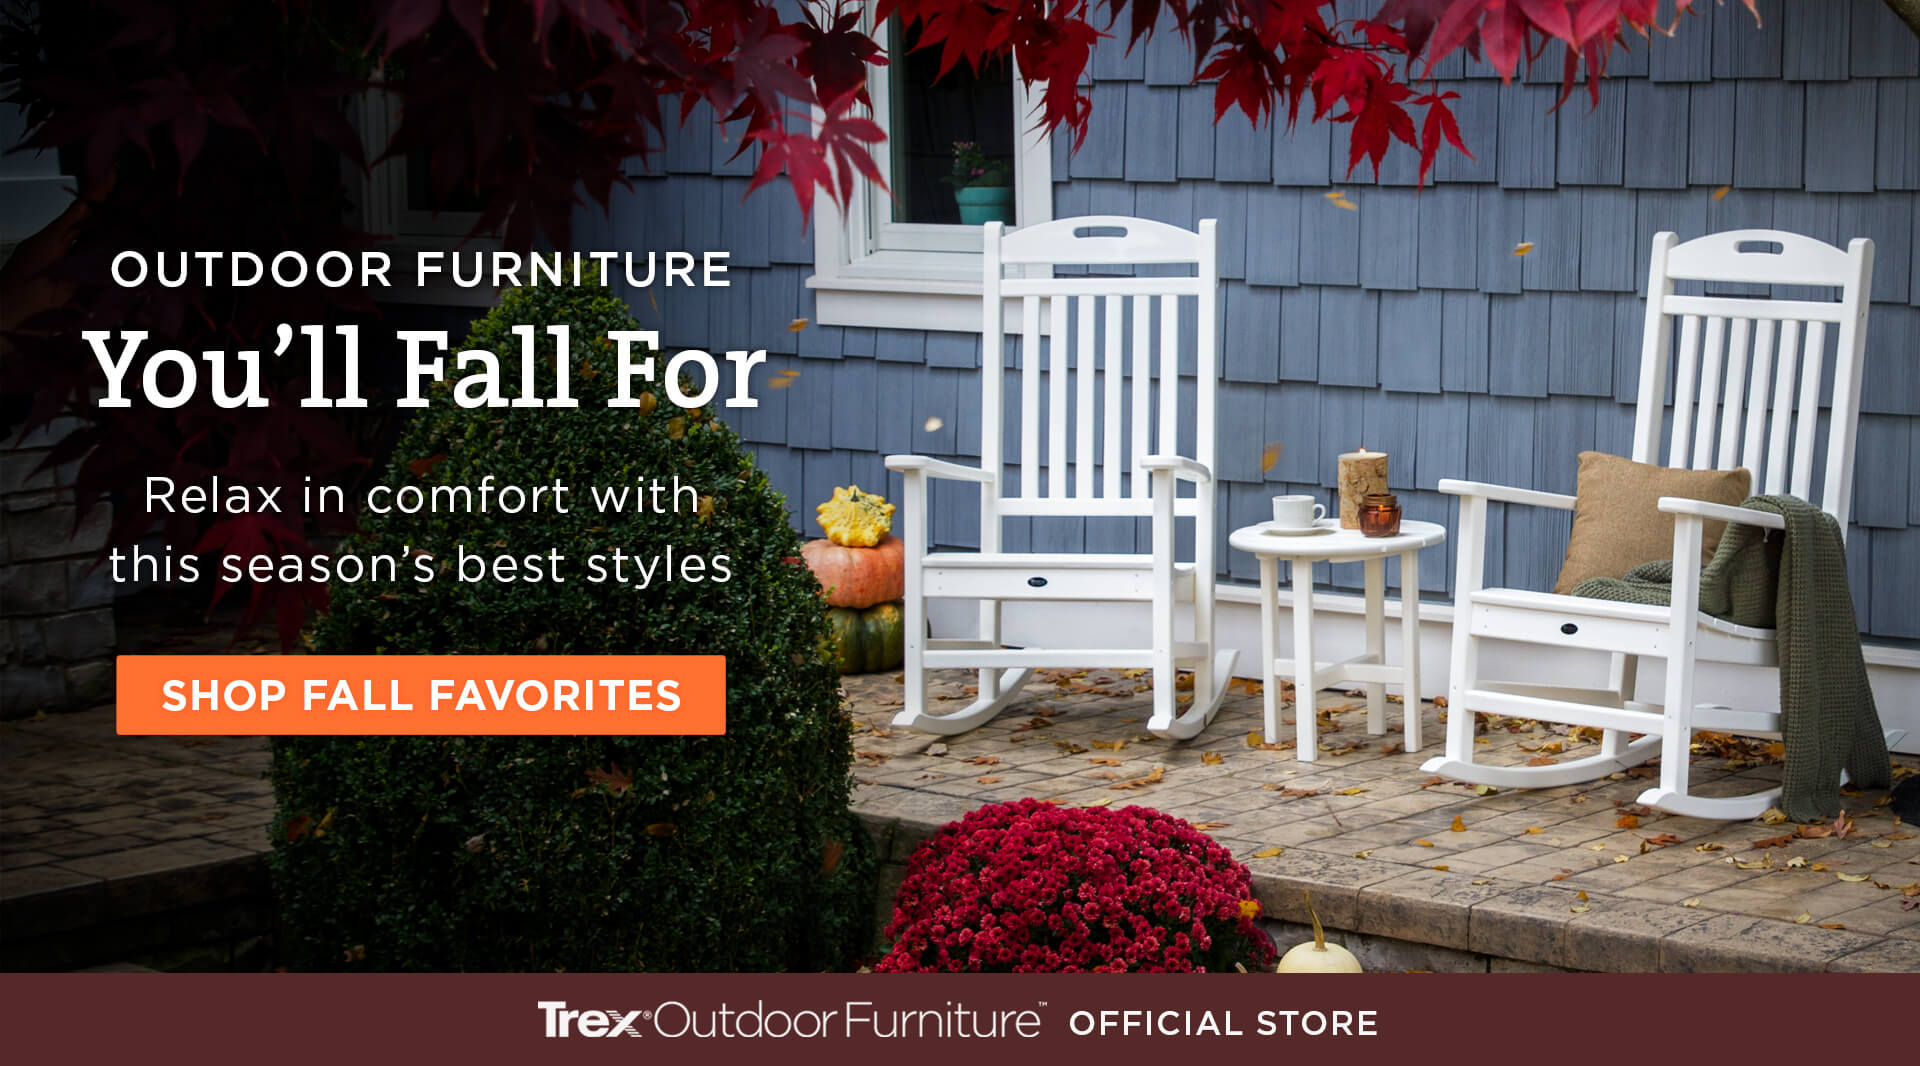 Outdoor Furniture You'll Fall For